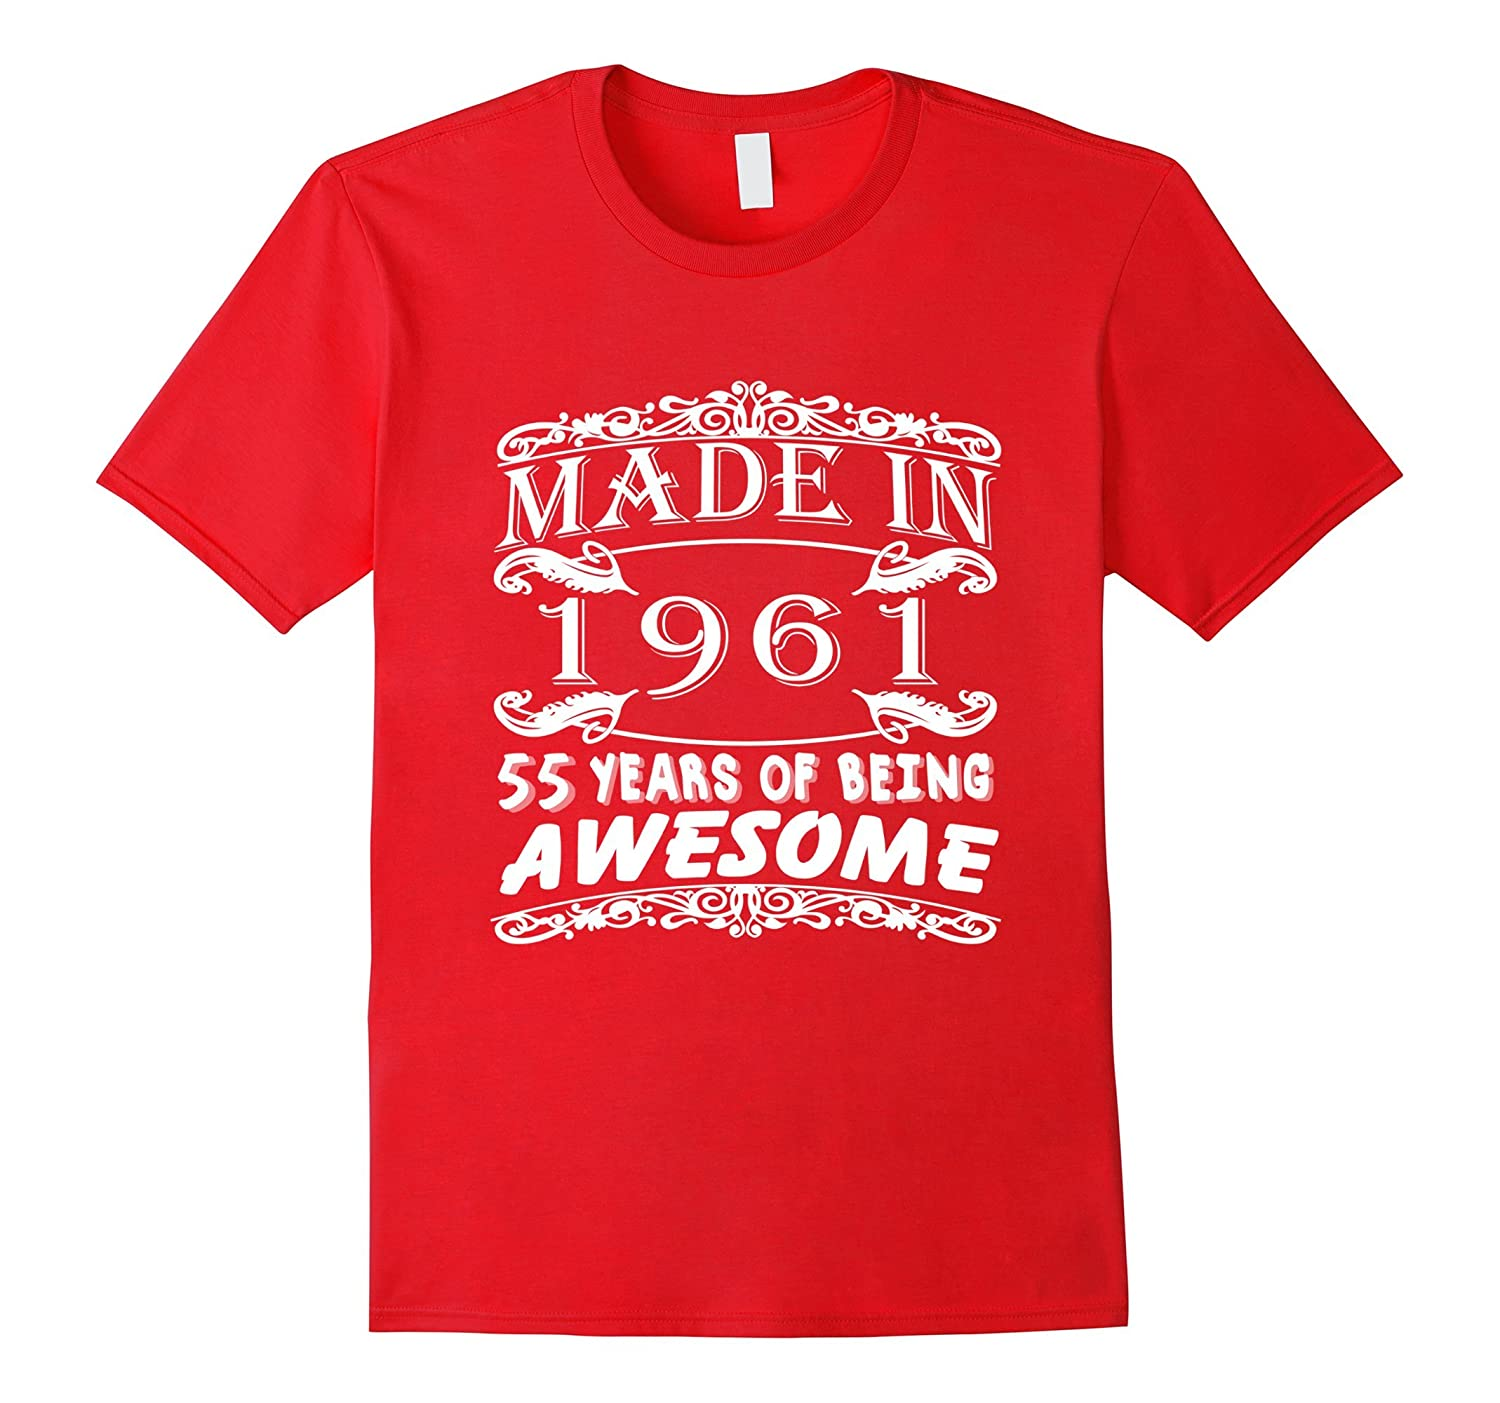 Awesome Age 55 Years 1961 Perfect 55th Birthday T Shirt BN Banazatee